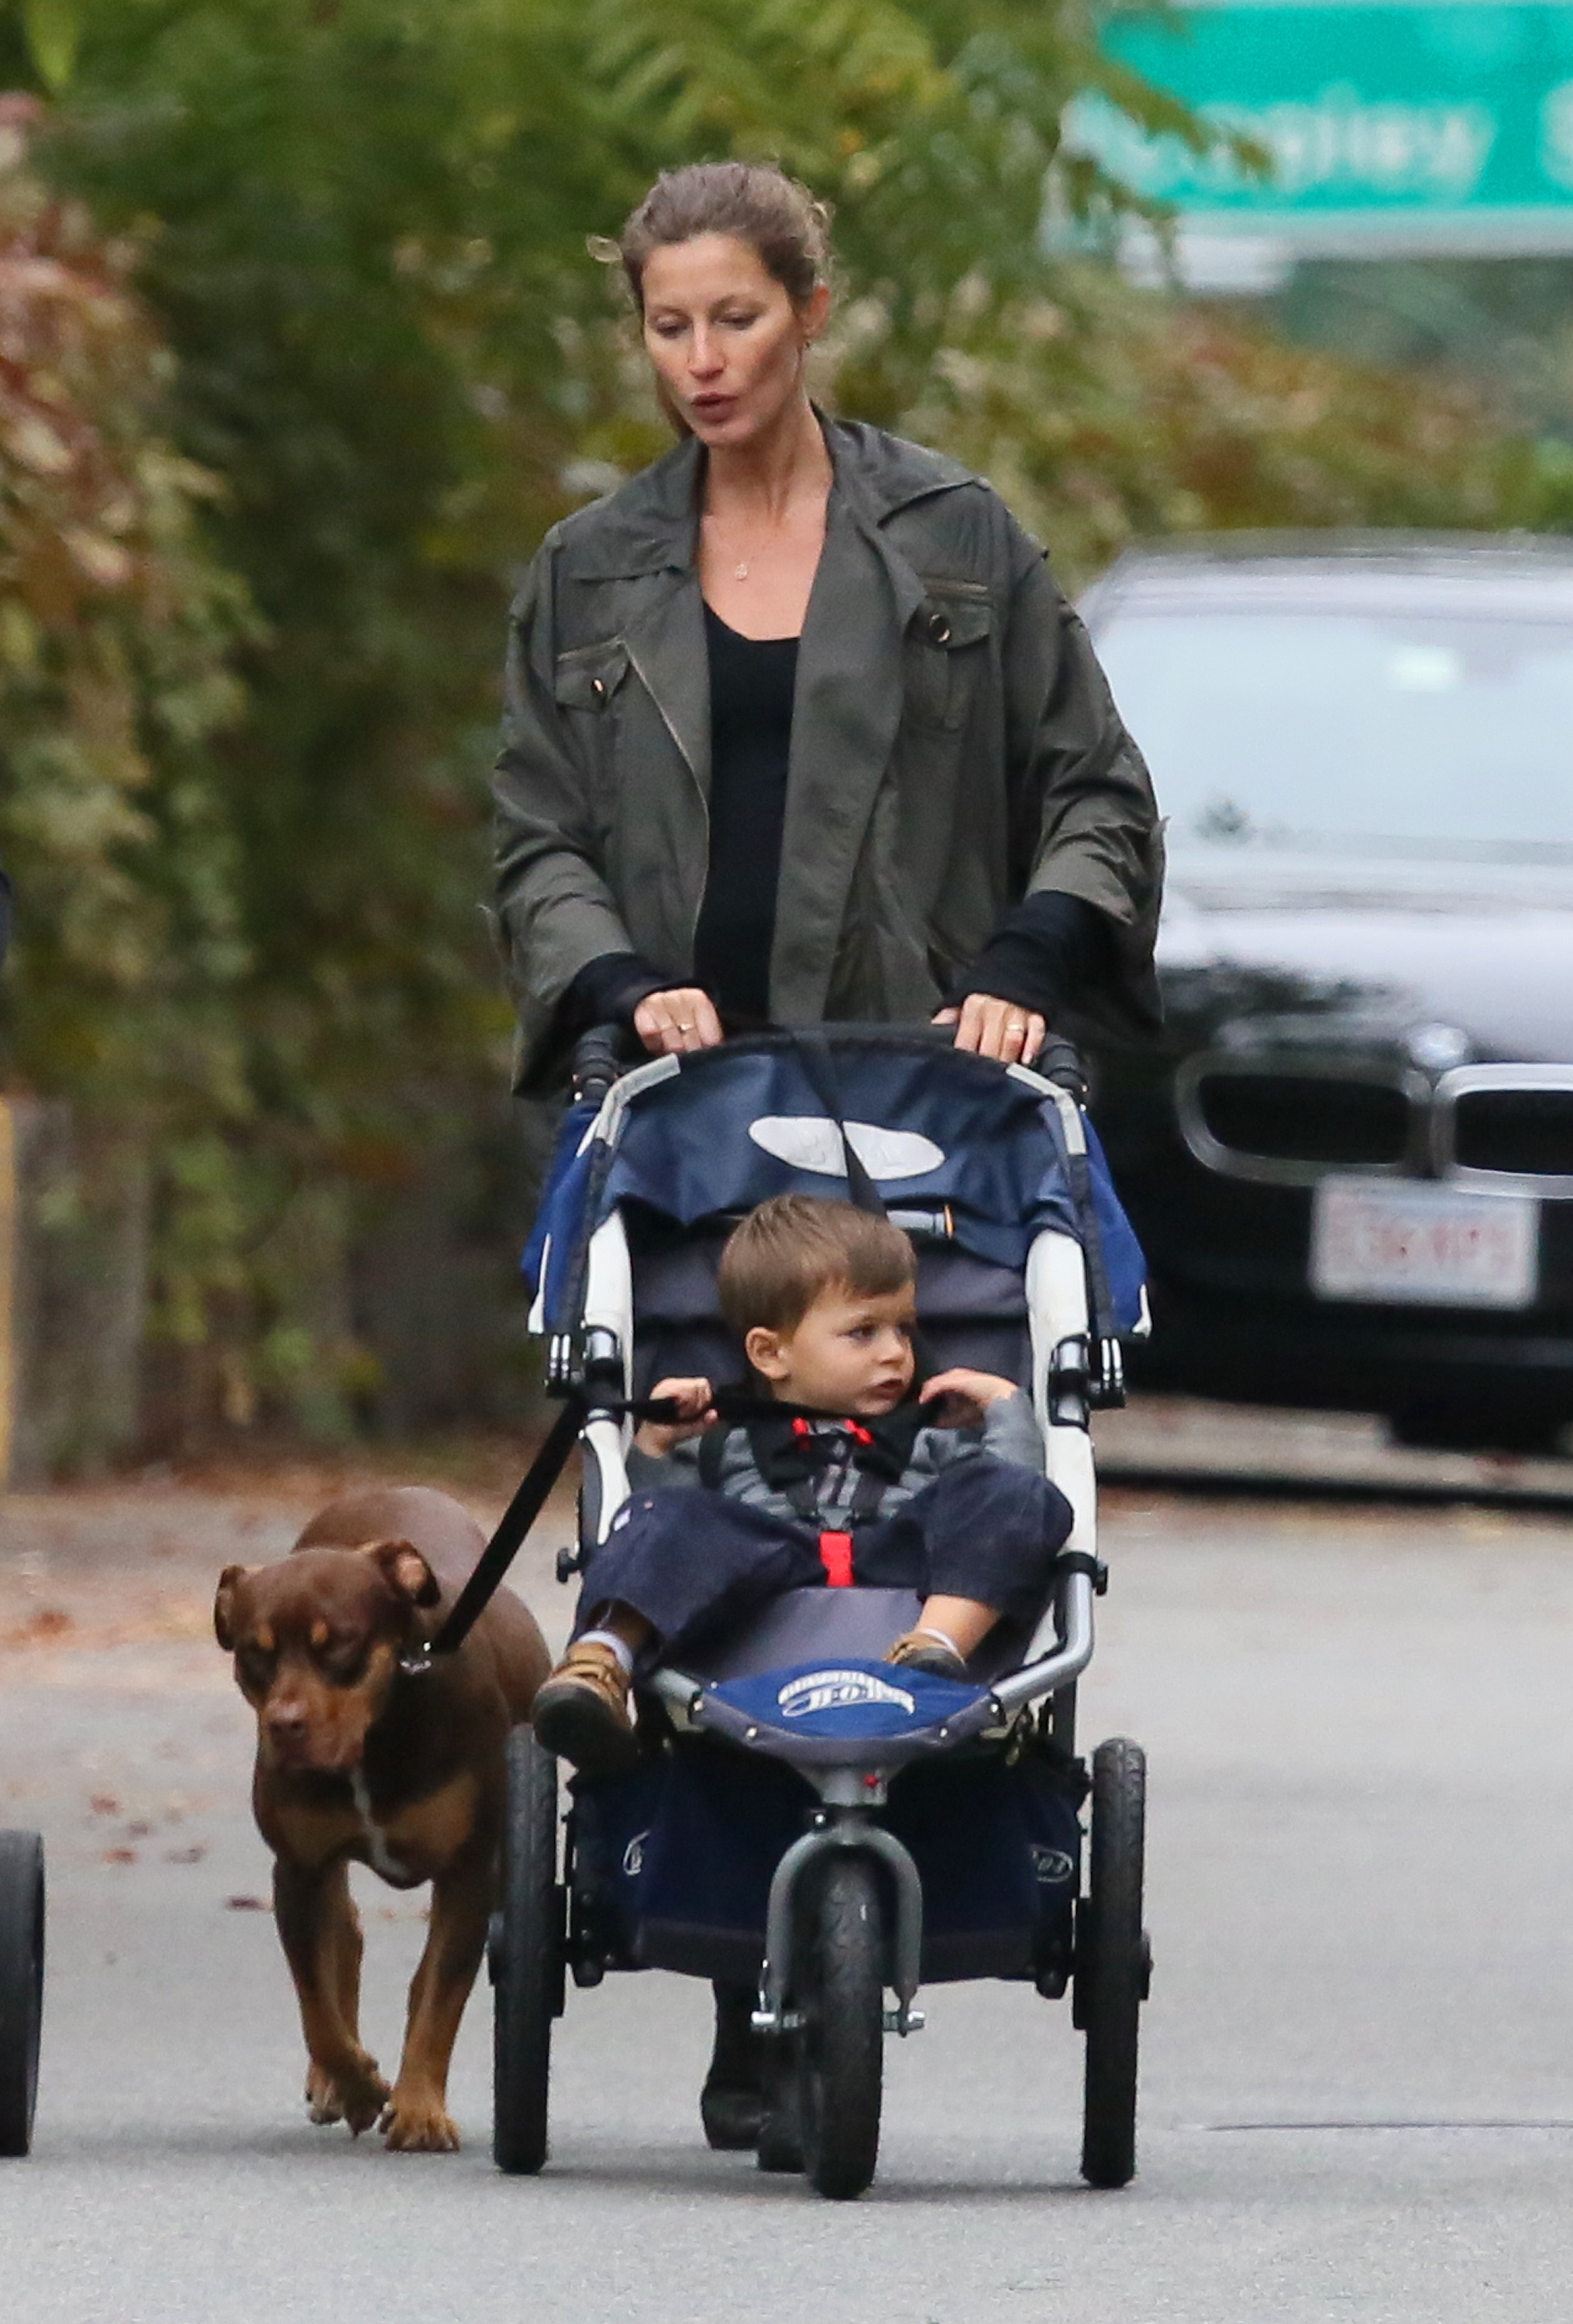 Gisele pregnant son daughter baby walk Tom Brady